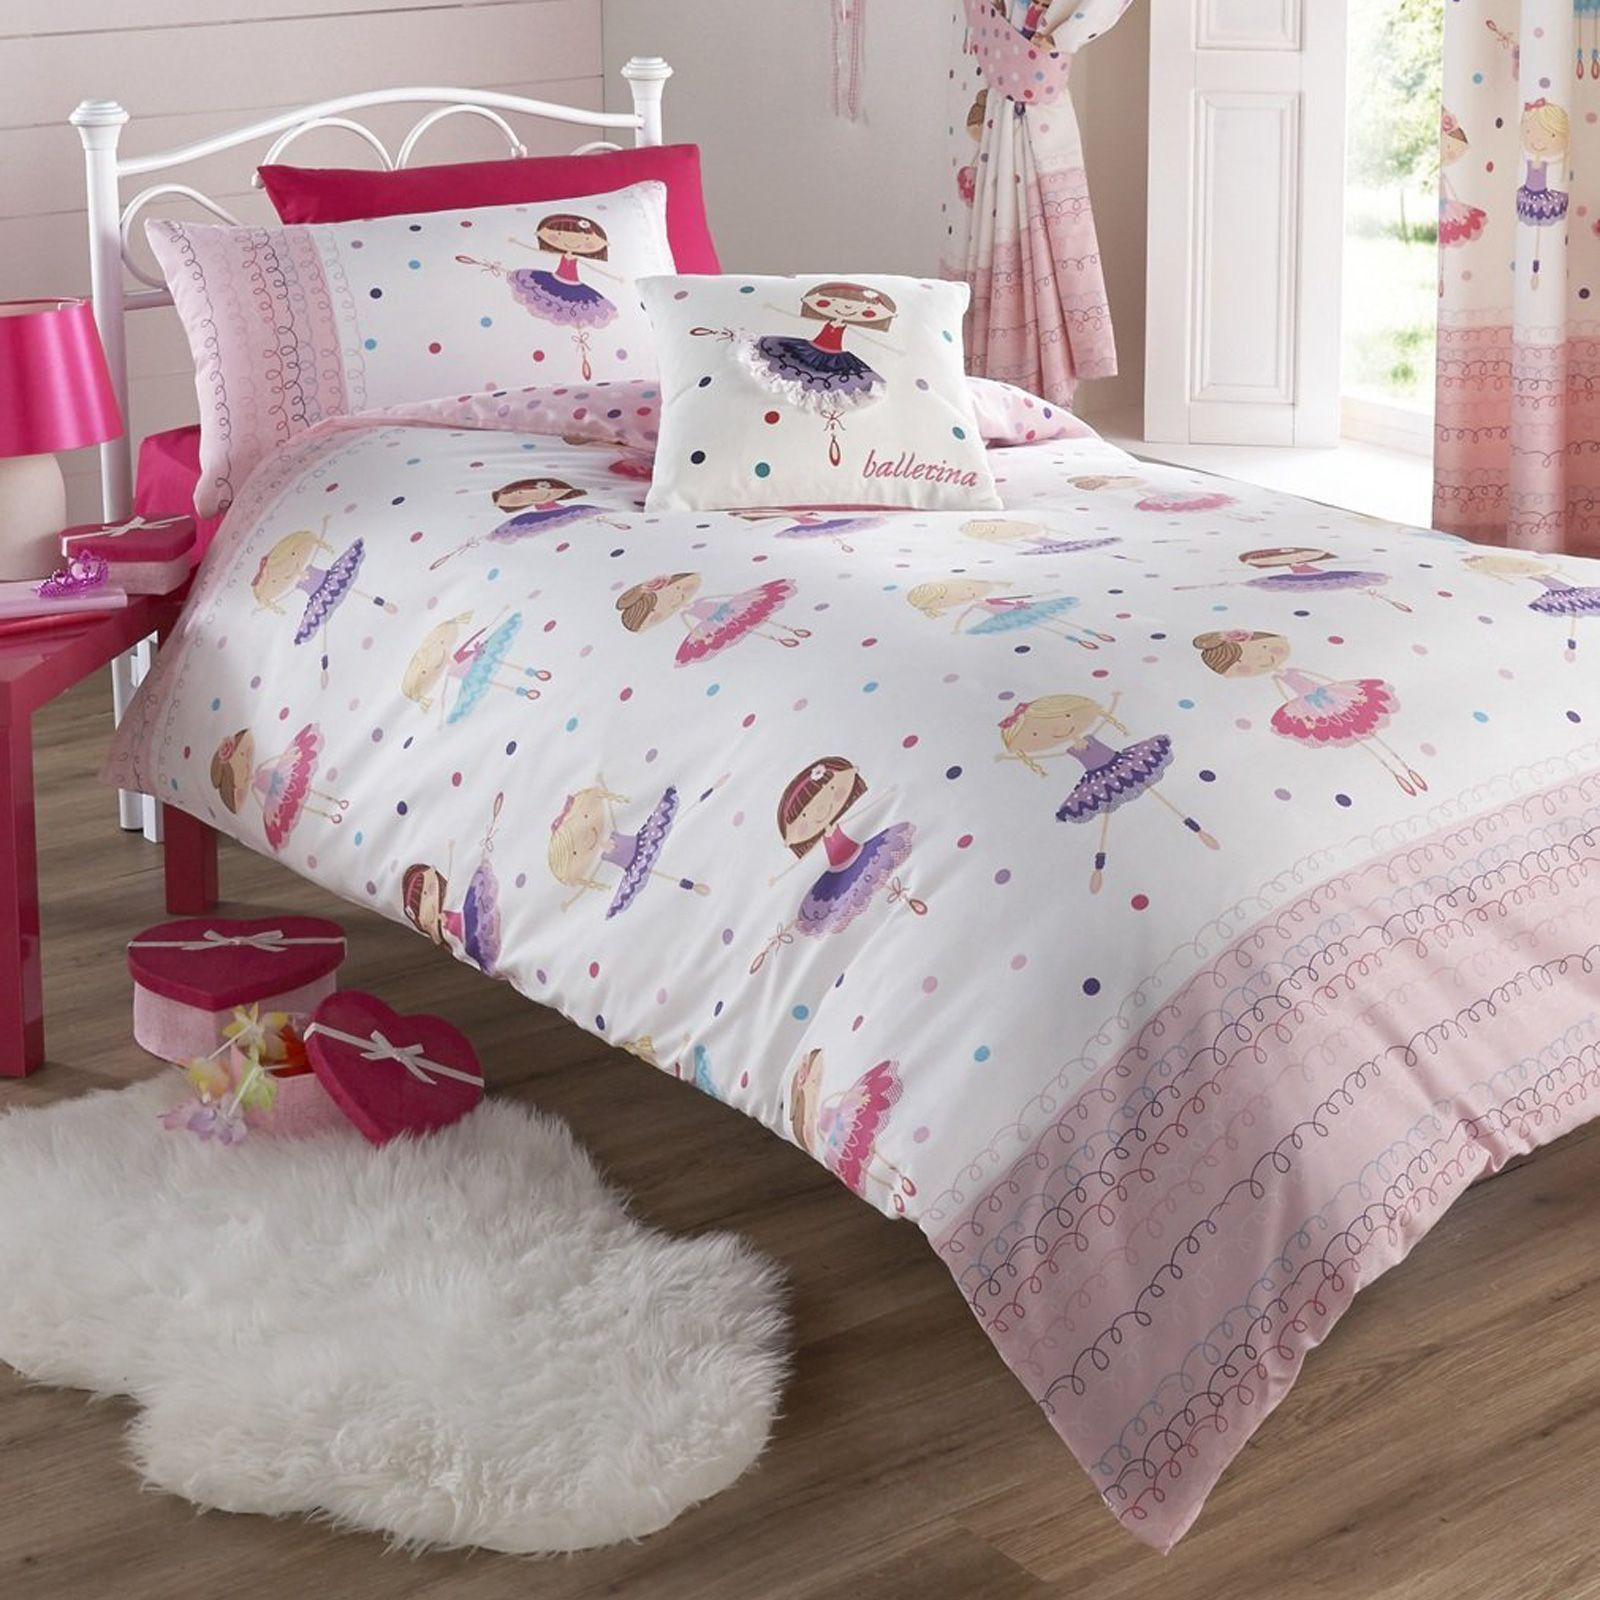 girls single duvet cover sets bedding unicorn flower horse. Black Bedroom Furniture Sets. Home Design Ideas